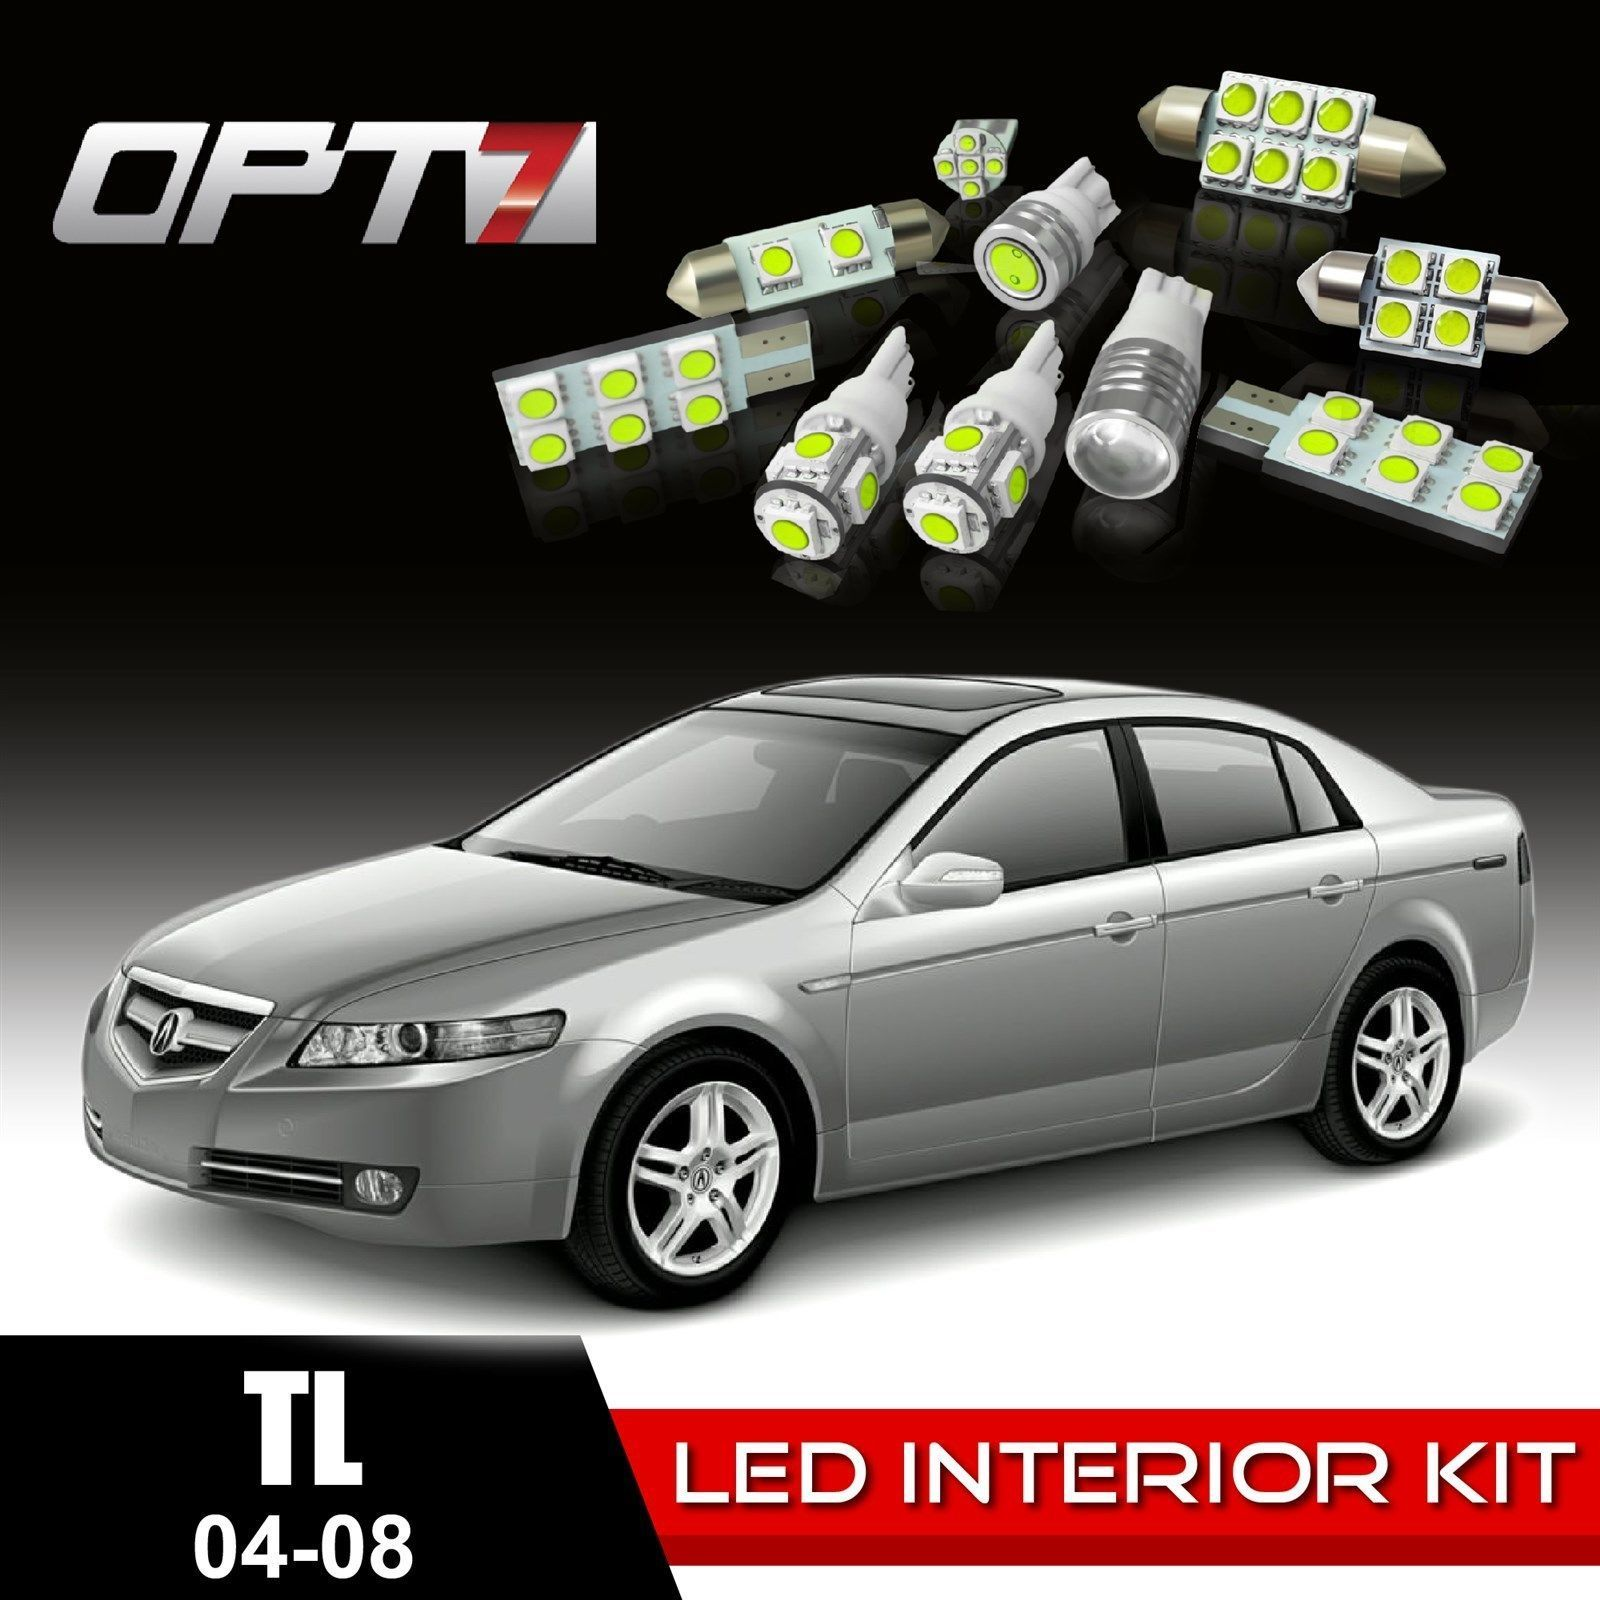 Details About OPT7 14pc Interior LED Light Bulbs Package